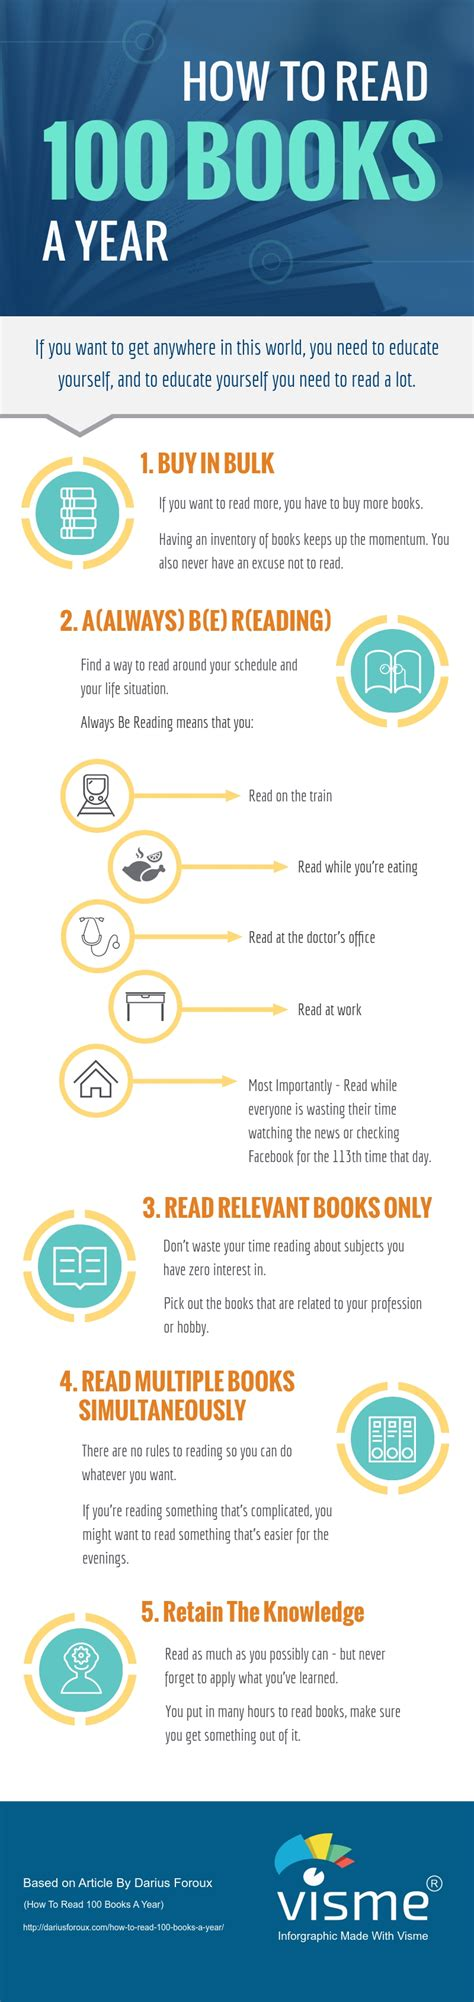 100 picture books how to read 100 books a year infographic darius foroux